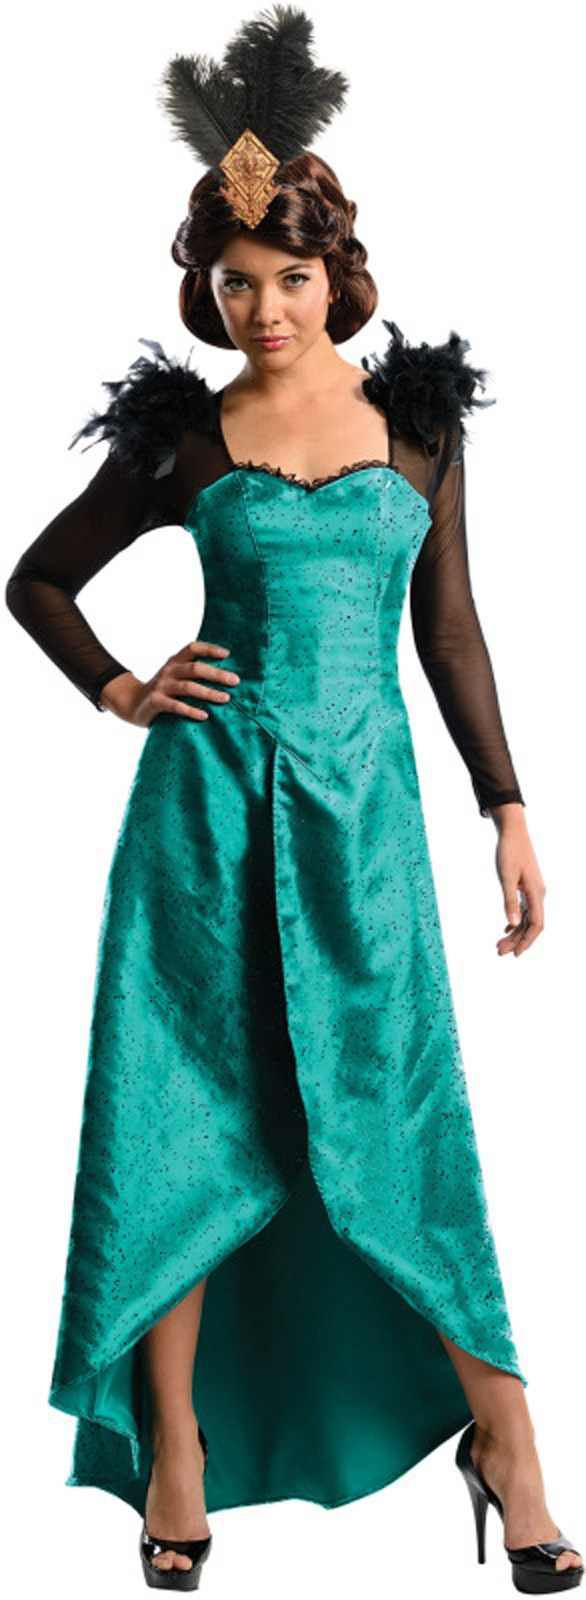 Oz The Great And Powerful Deluxe Evanora Adult Costume